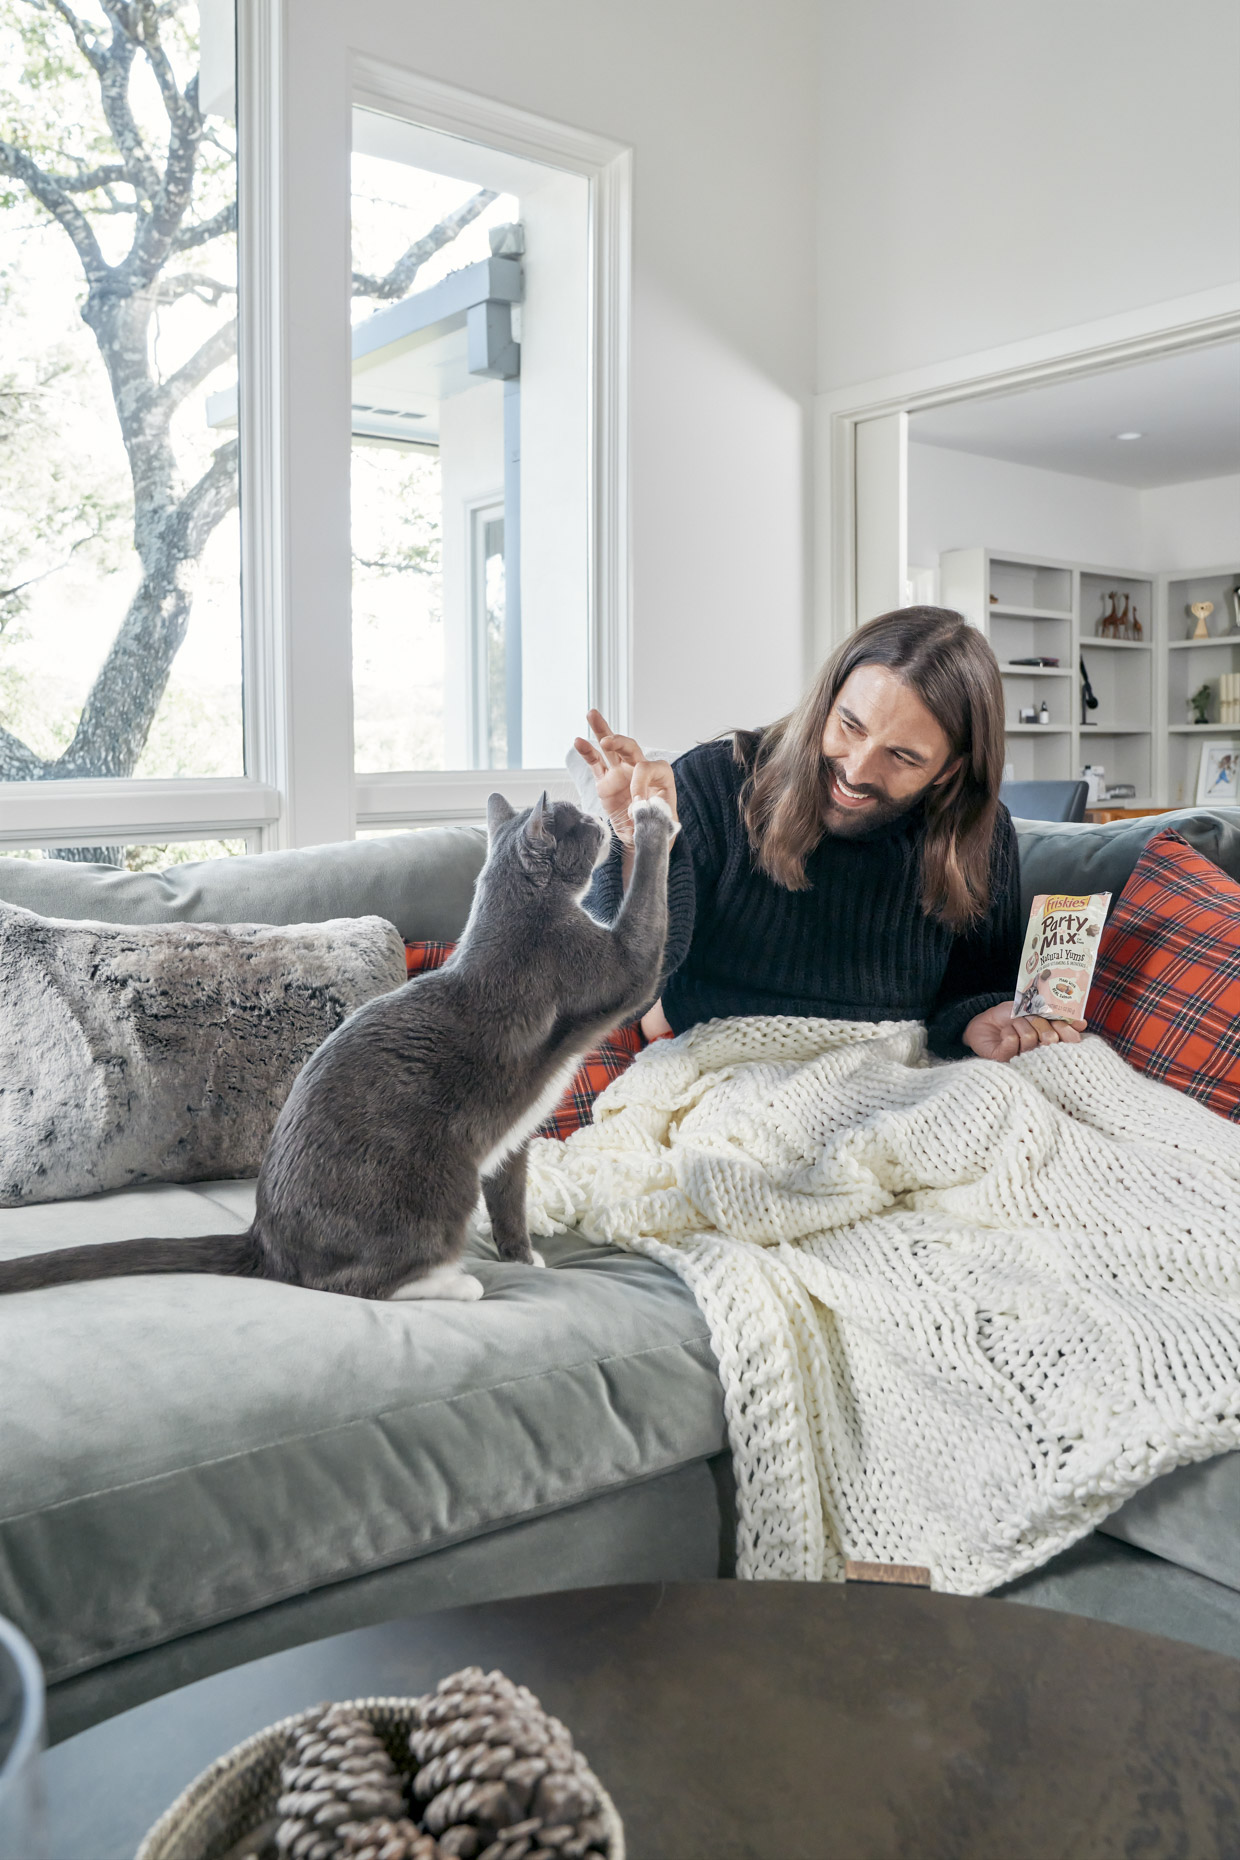 Jonathan Van Ness feeding cat Purina Friskies party mix treat on sofa